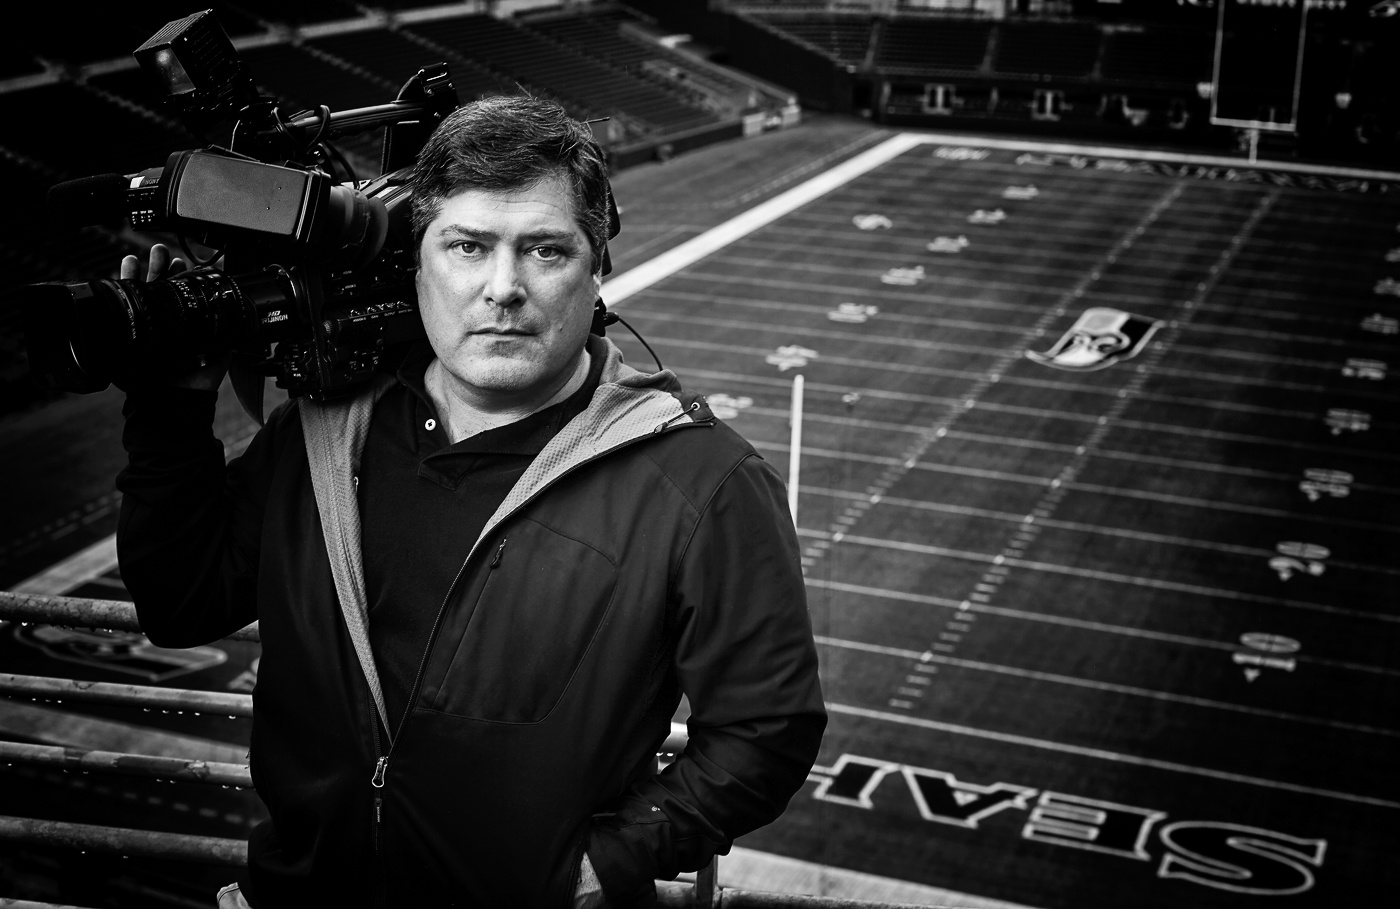 A Day in the Life of Award-Winning Photographer and TV Commercial Producer Tom Lowe